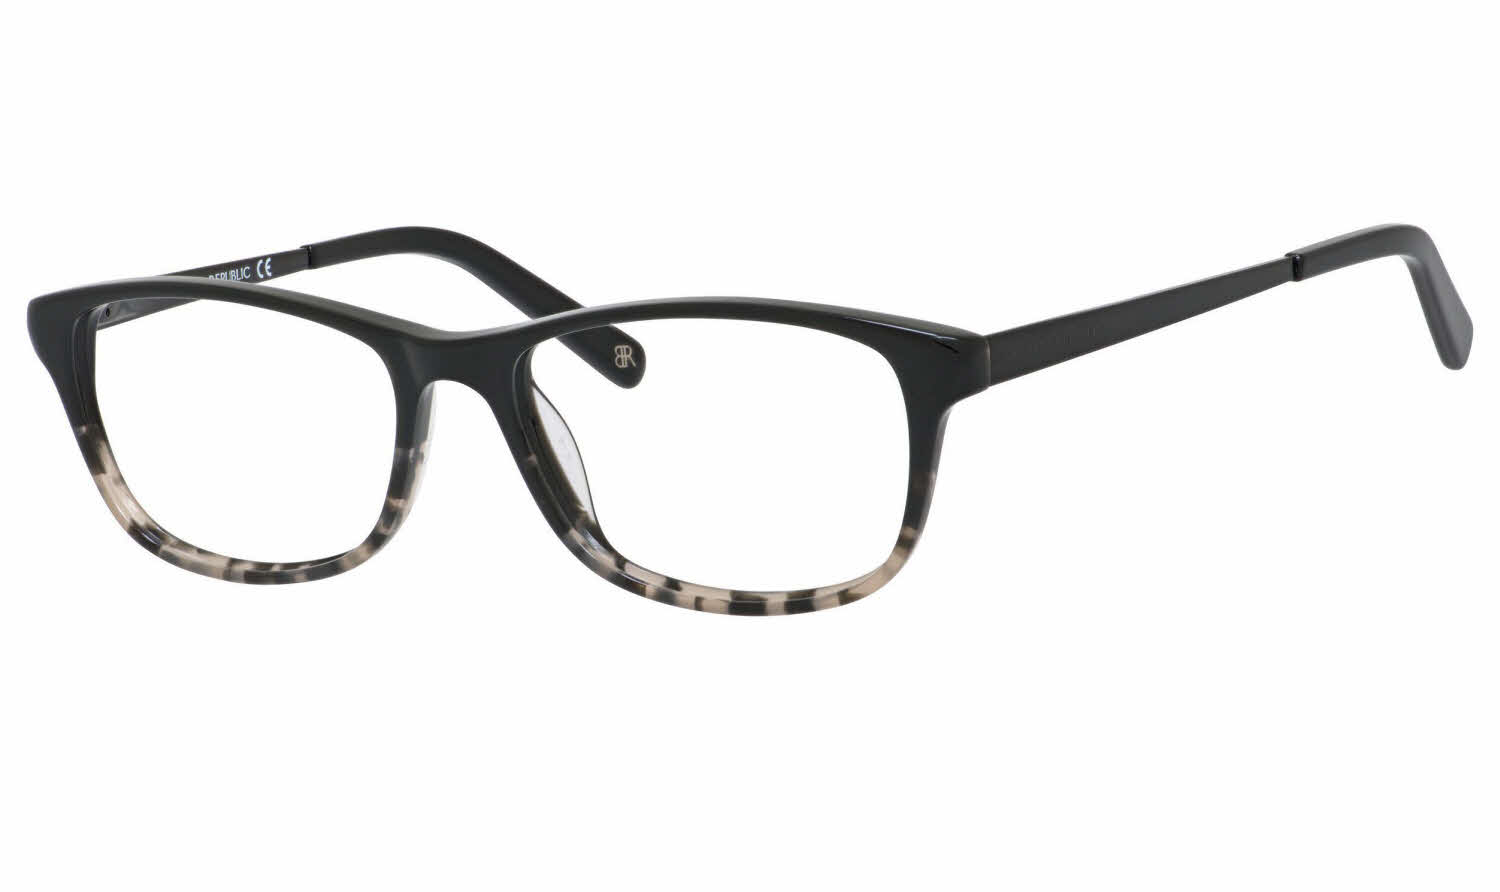 the latest eyeglass frames  New Women\u0027s Prescription Eyeglasses: Latest Styles for a Woman